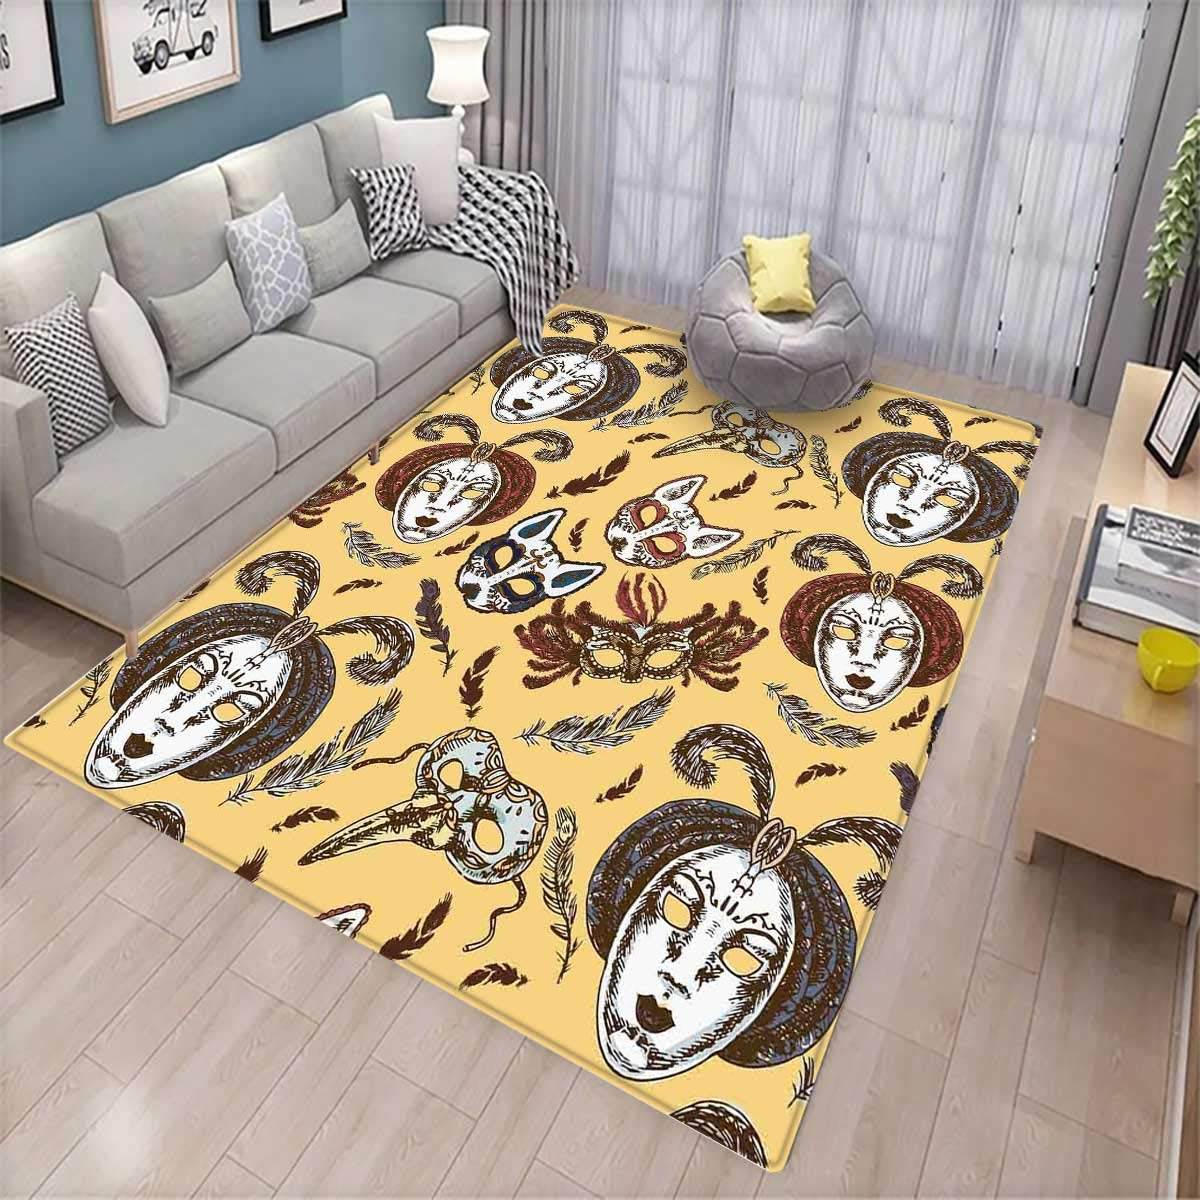 Masquerade Floor Mat for Kids Venetian Style Paper Mache Face Mask with Feathers Dance Event Theme Bath Mat Non Slip Mustard Brown White